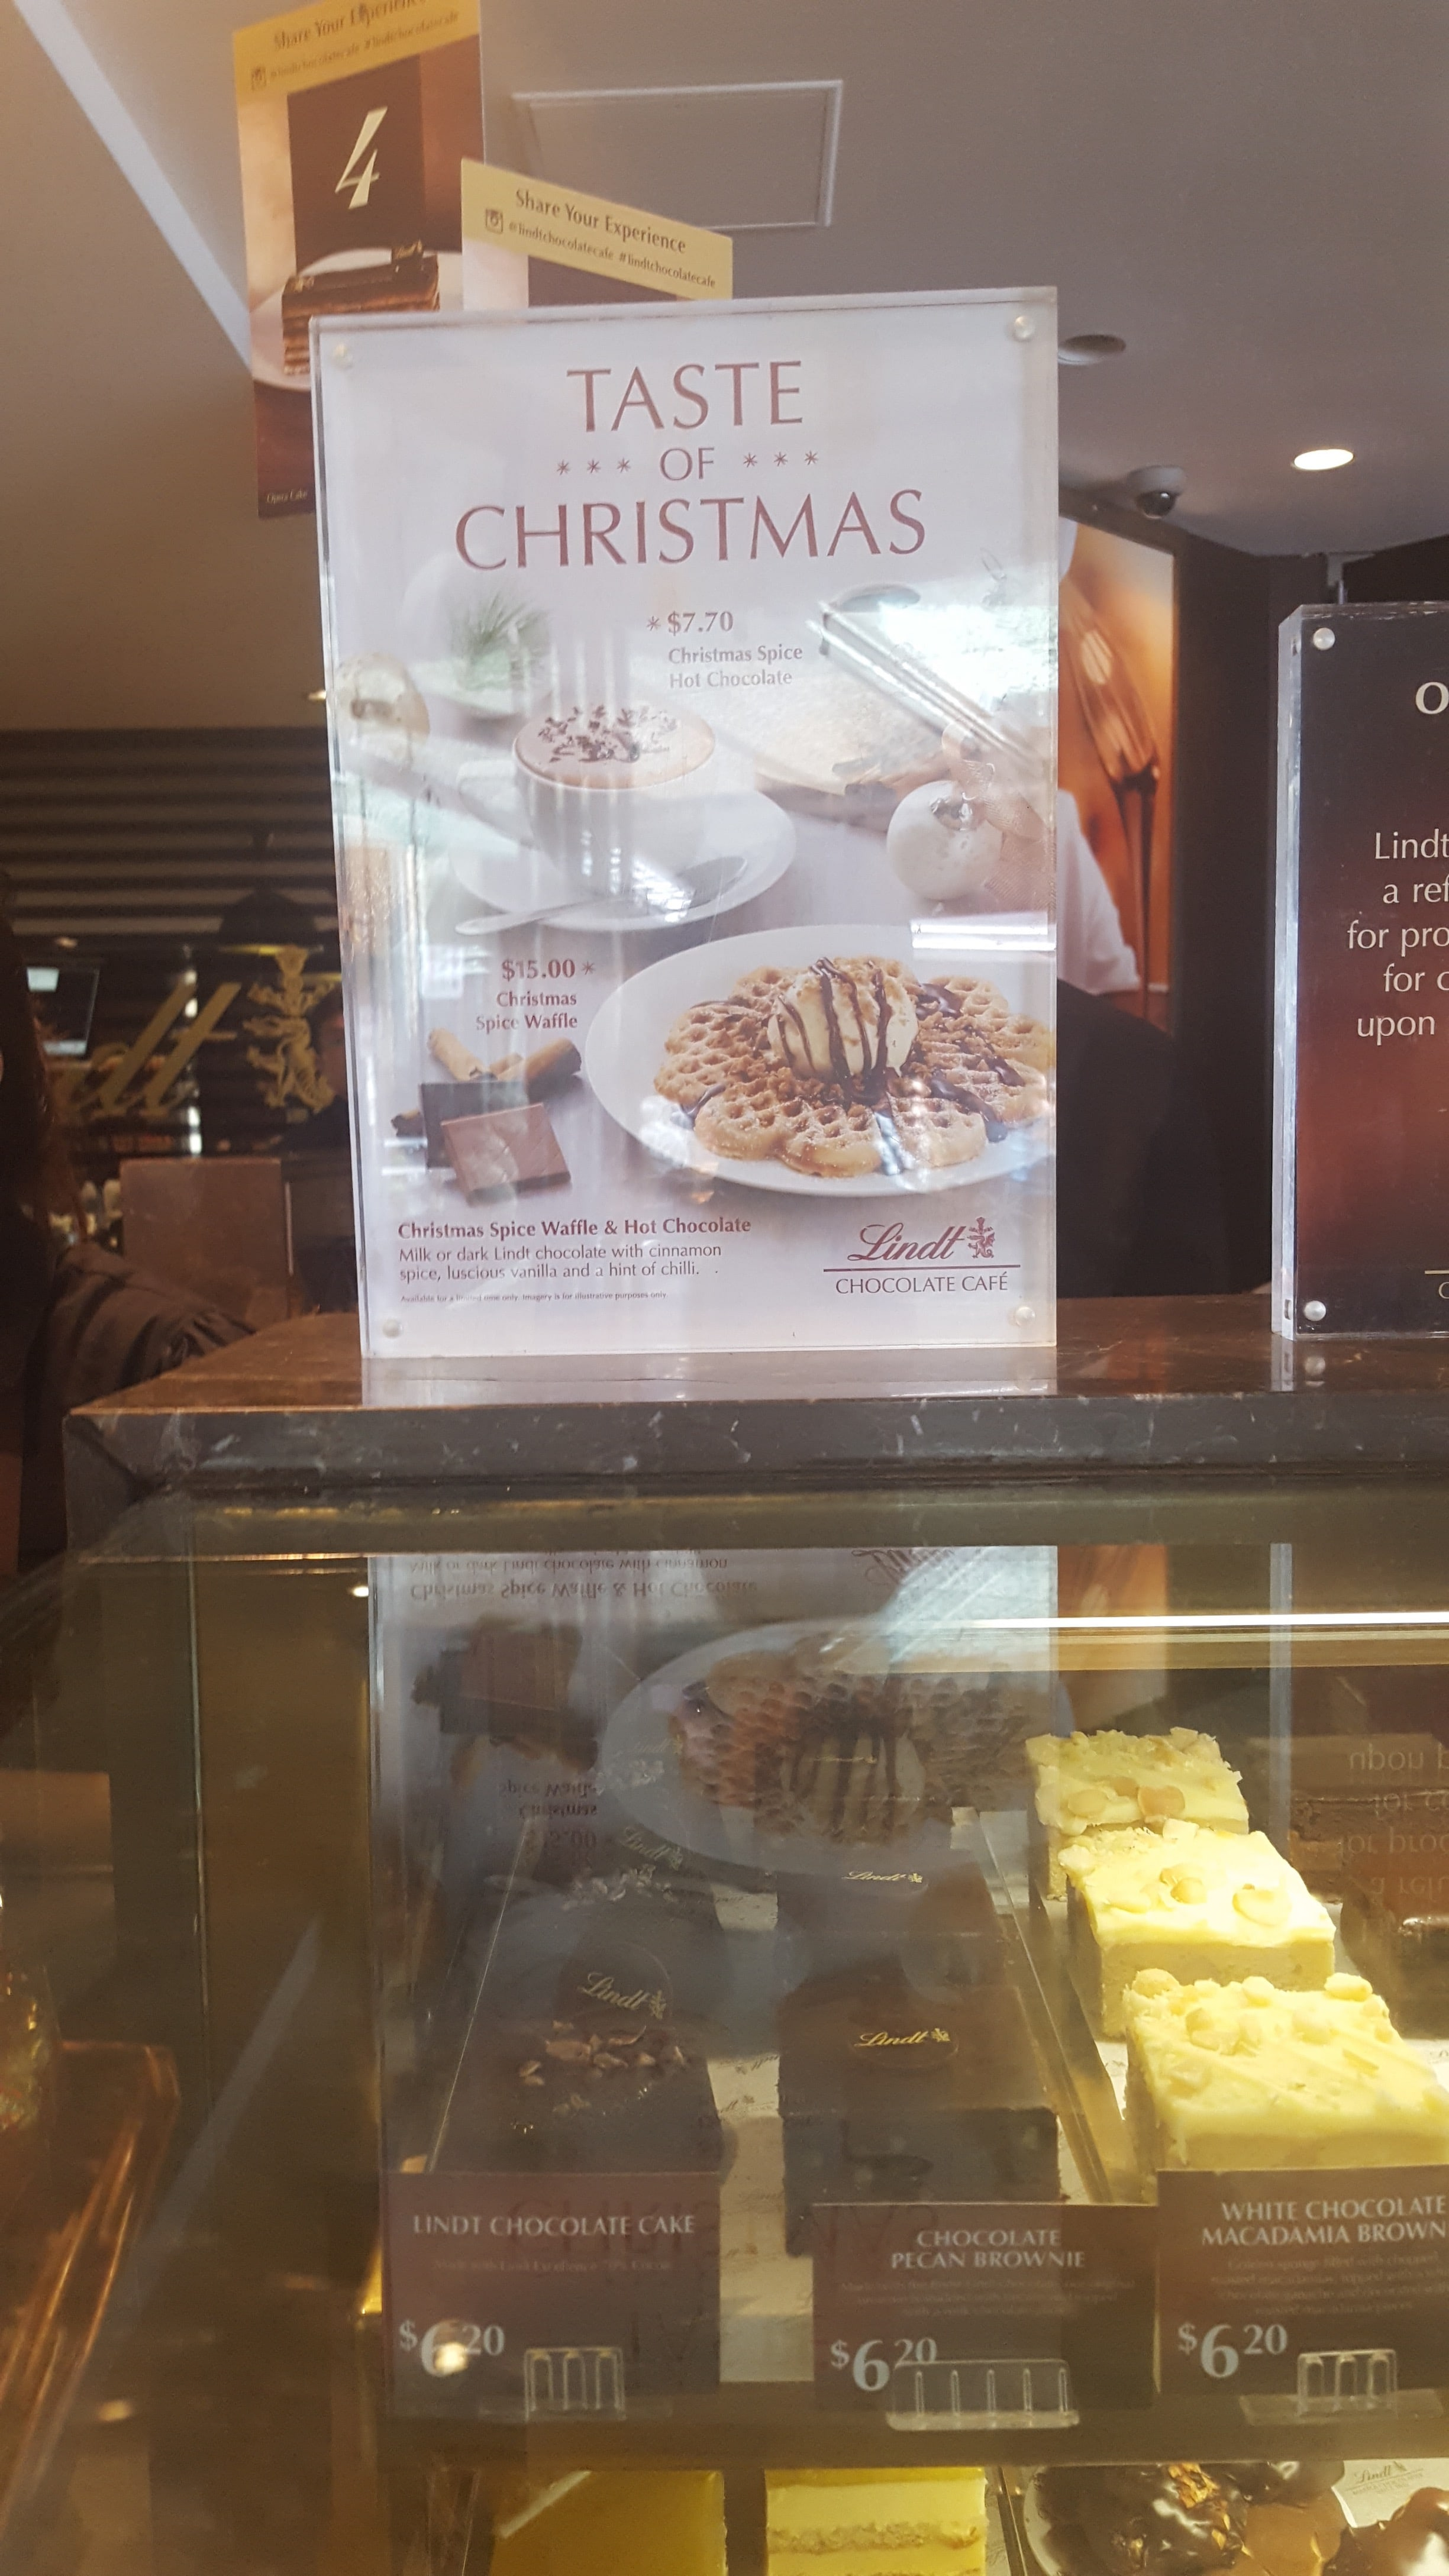 Visiting The Lindt Chocolate Café The University Of Leicester